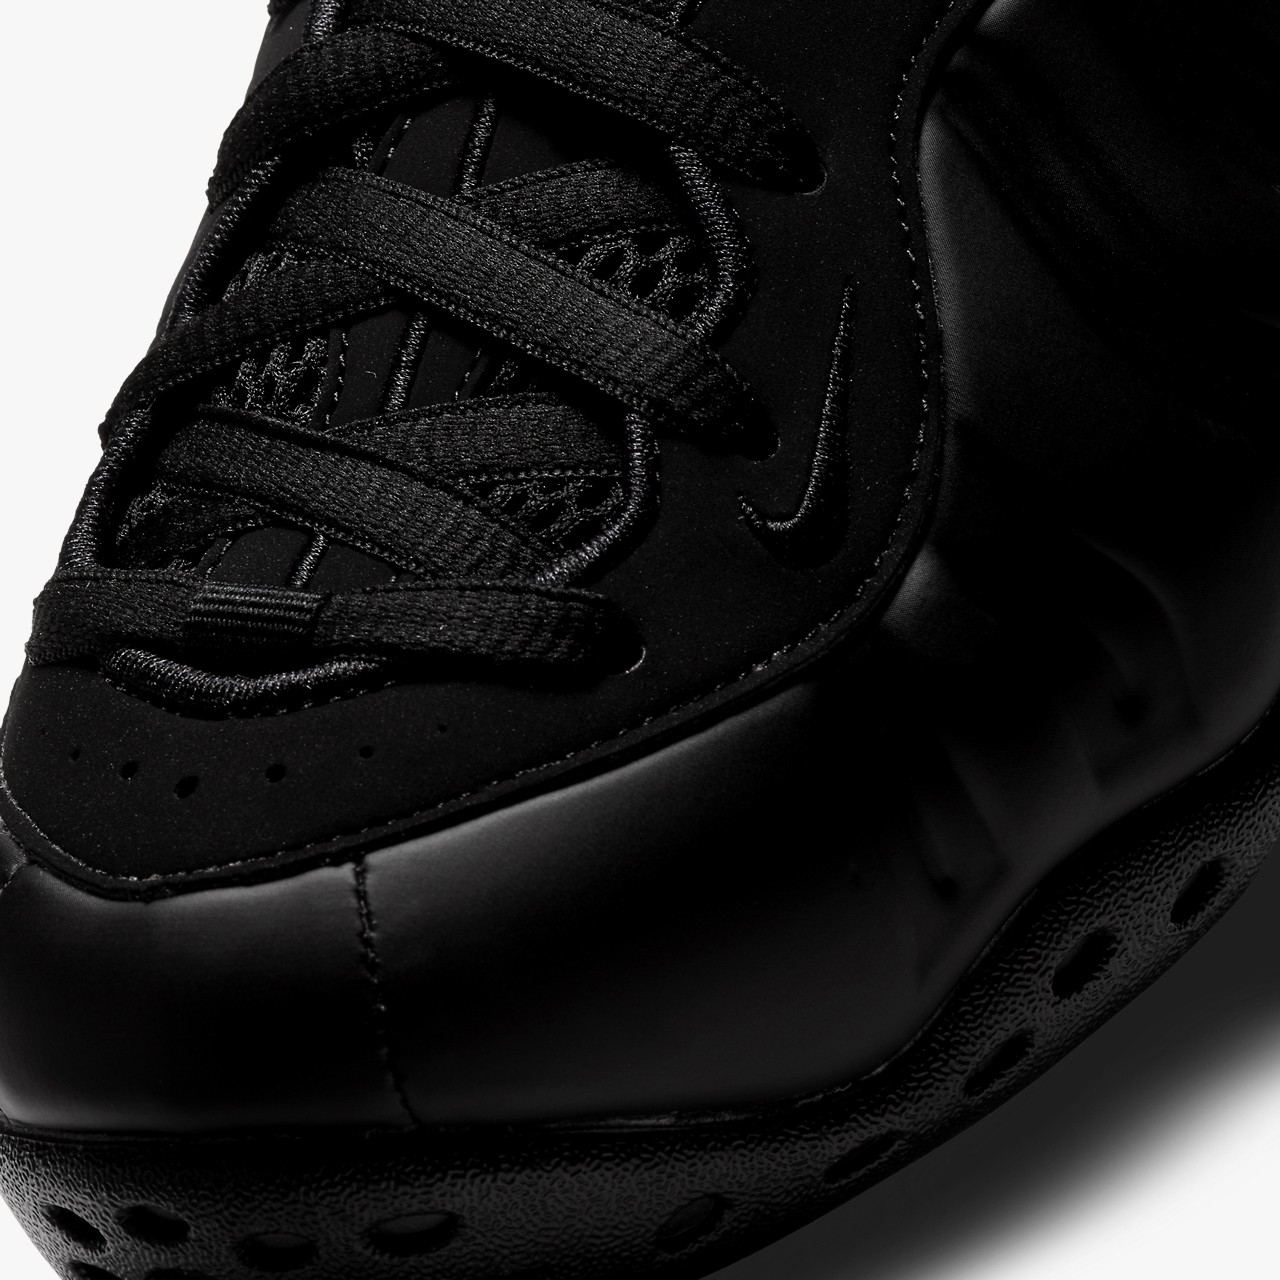 Preview: Nike Air Foamposite One Mini Swoosh Le Site de ...